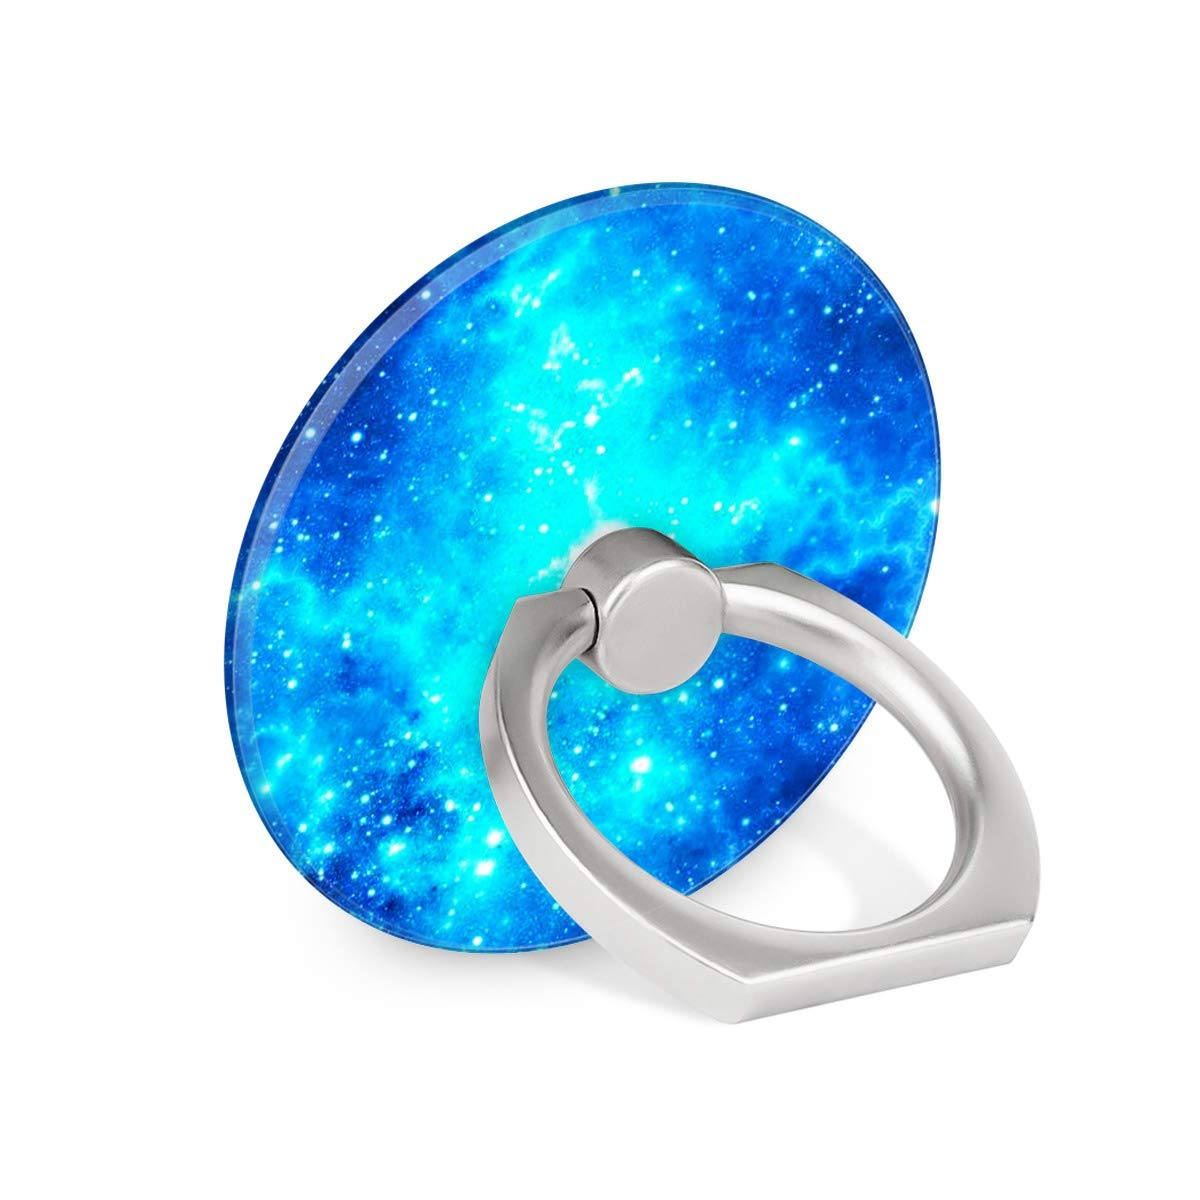 Blue Starry Sky Space Galaxy Ring Phone Holder Stand Mounts for iPhone iPad, Samsung Other Smartphones